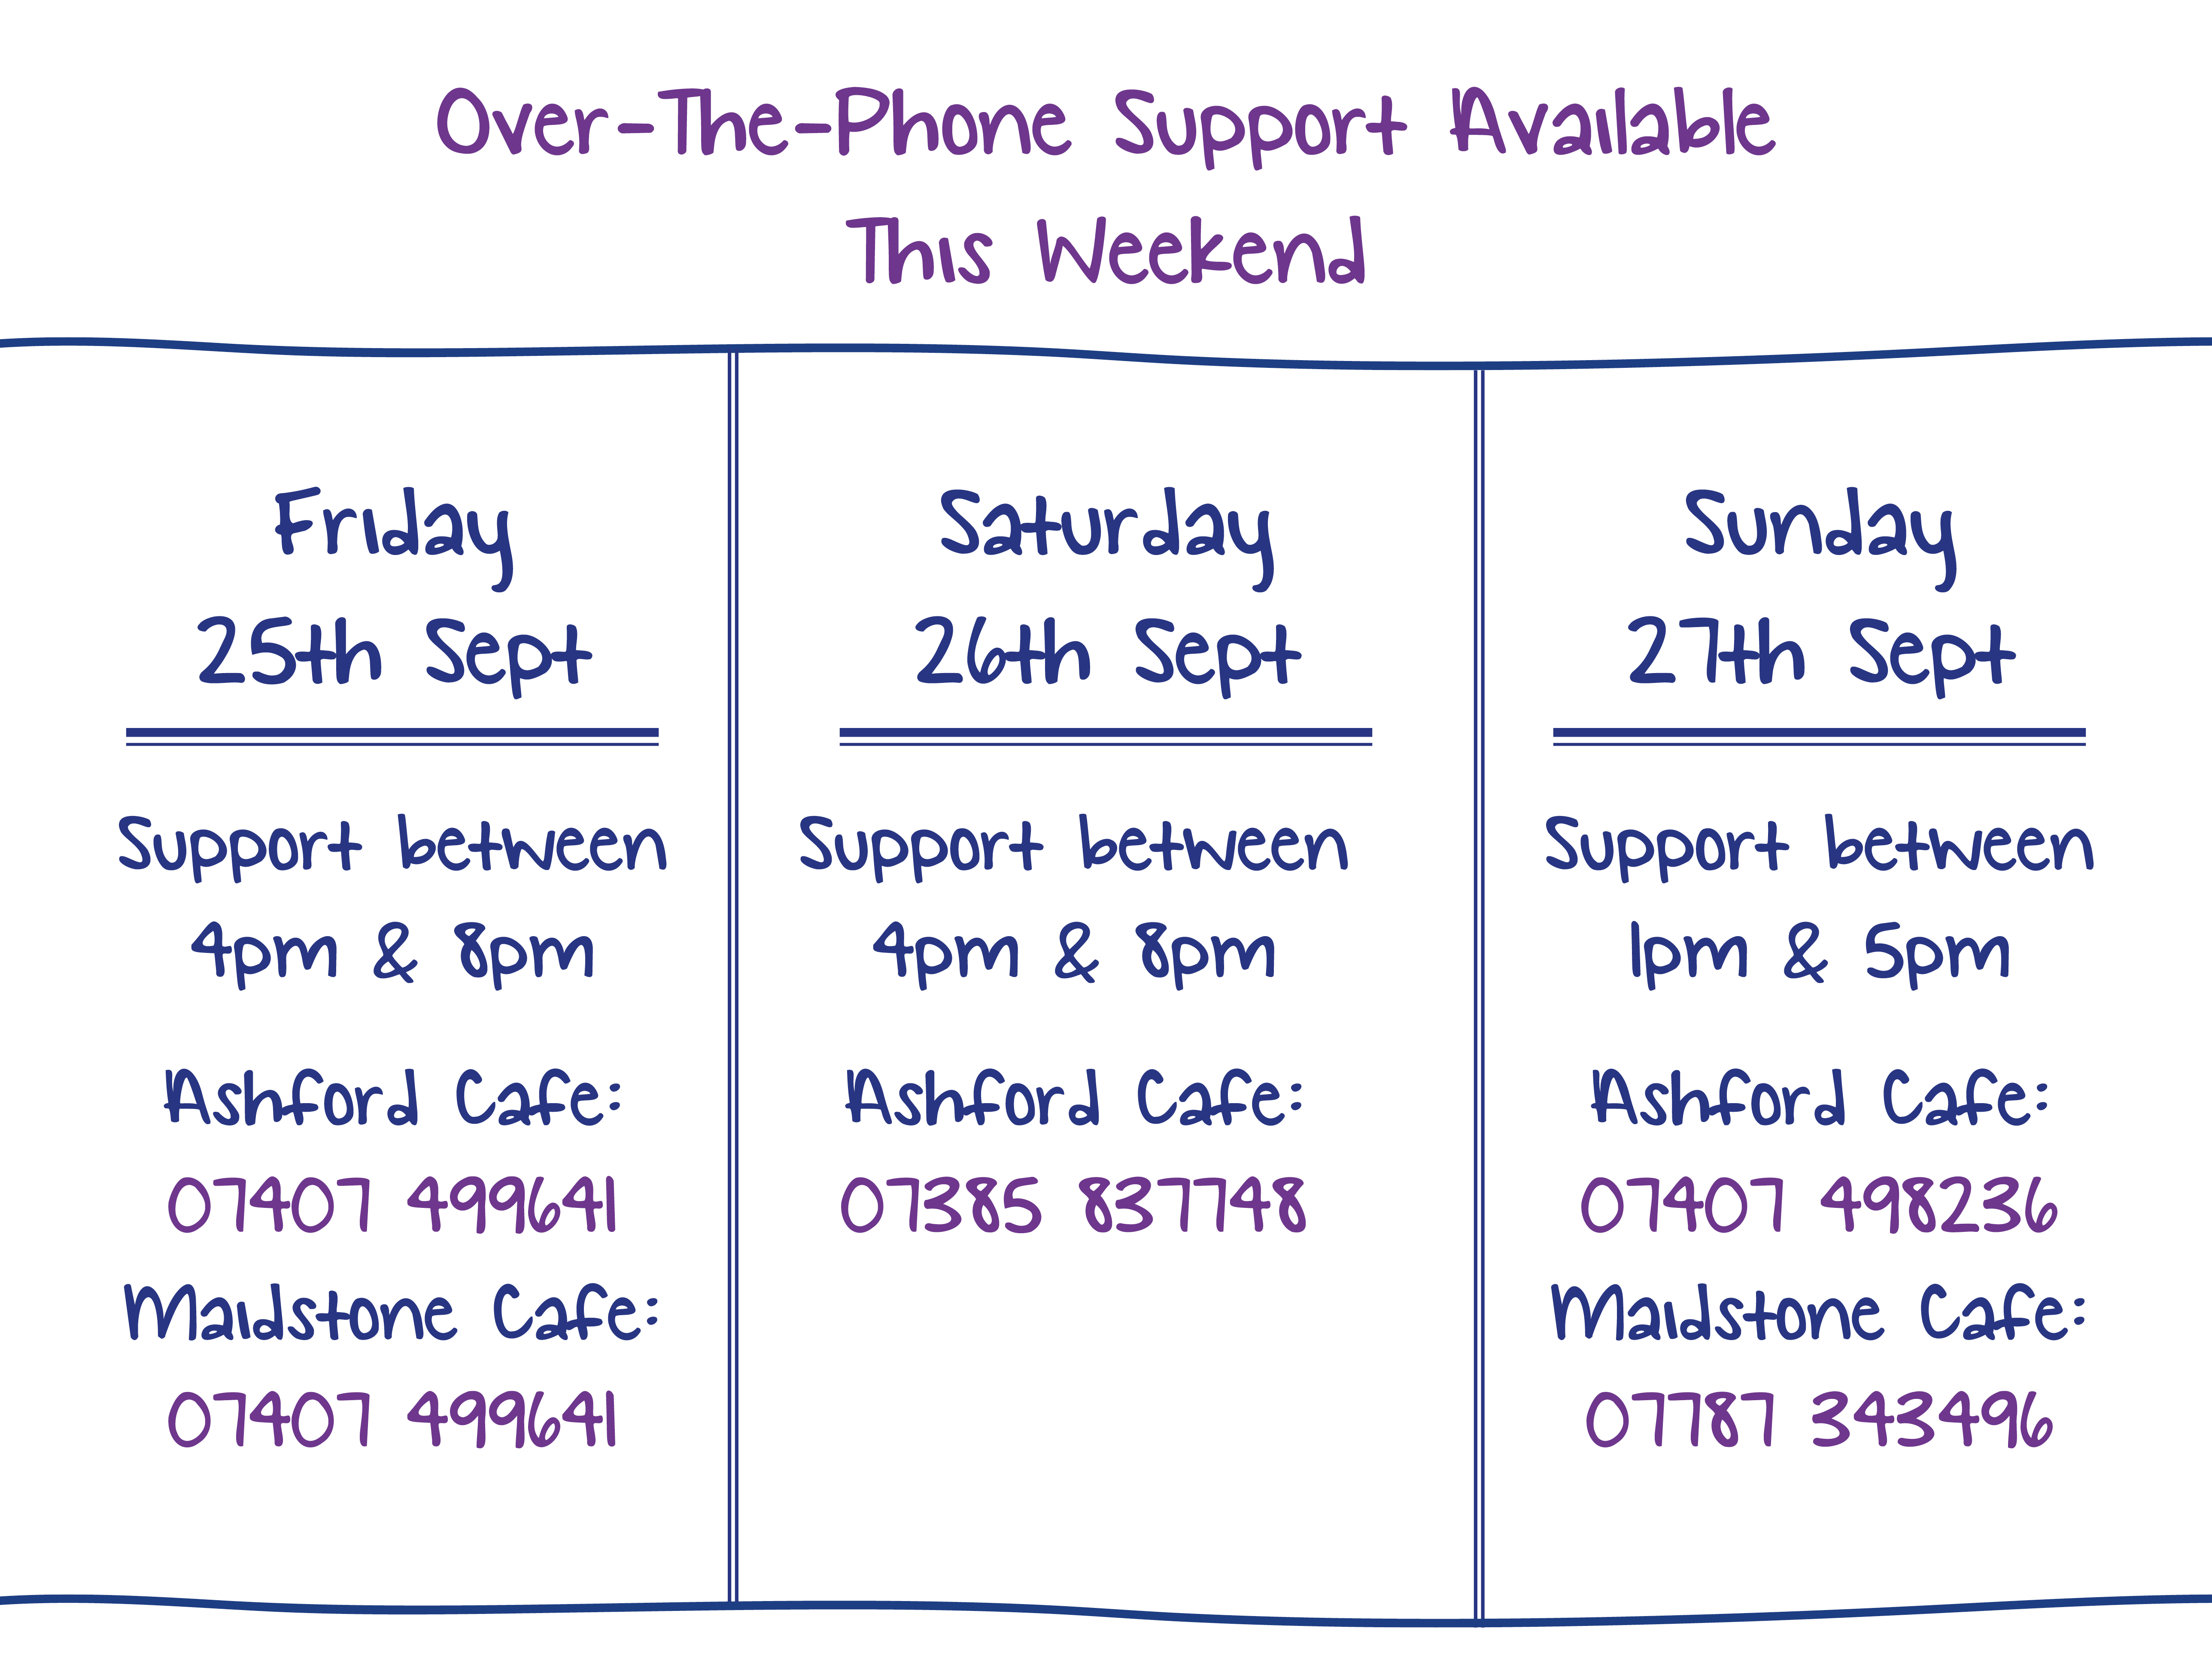 Over-The-Phone Support Available  This Weekend. Friday 25th Sept. Support between 4pm & 8pm Ashford Cafe: 07407 499641 Maidstone Cafe: 07407 499641. Saturday 26th Sept. Support between 4pm & 8pm Ashford Cafe:  07385 837748. Sunday 27th Sept. Support between 1pm & 5pm Ashford Cafe: 07407 498236 Maidstone Cafe: 07787 343496.